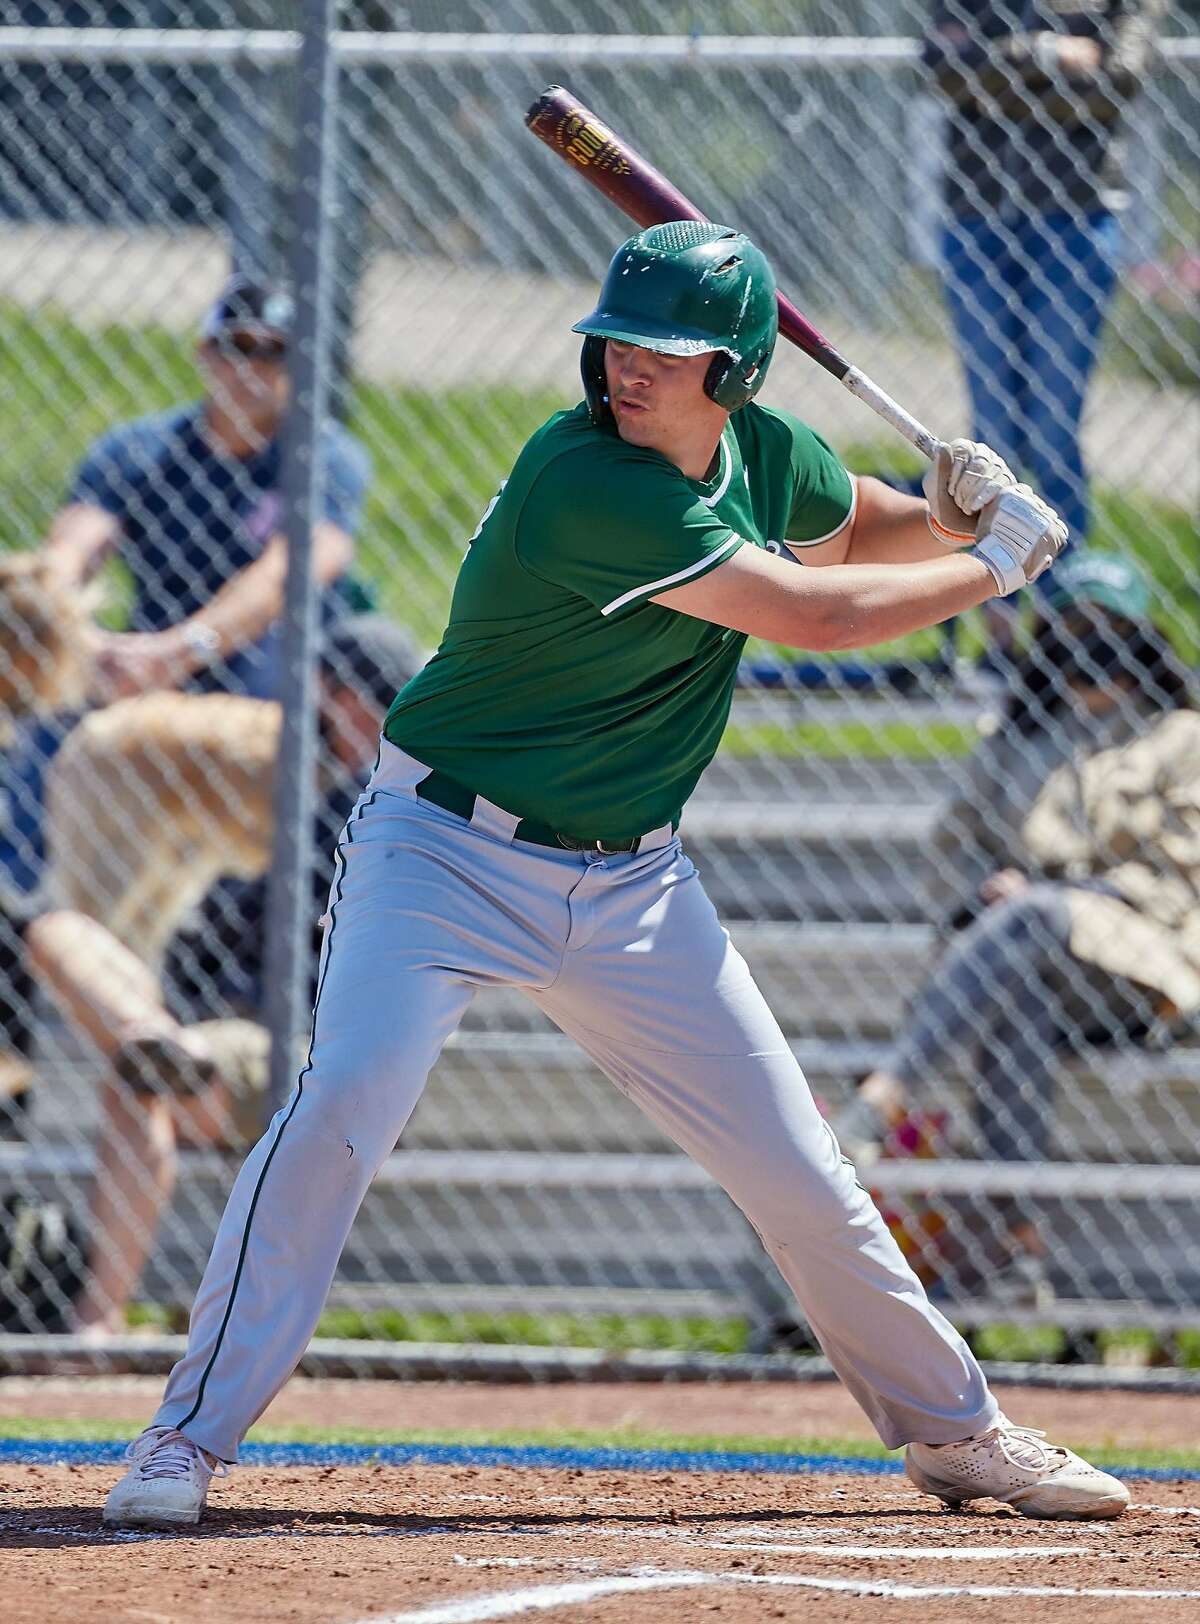 Blake Burke, a Tennessee commit, is hitting .552 (37-for-67) with 30 RBI for No. 1-ranked De La Salle-Concord.